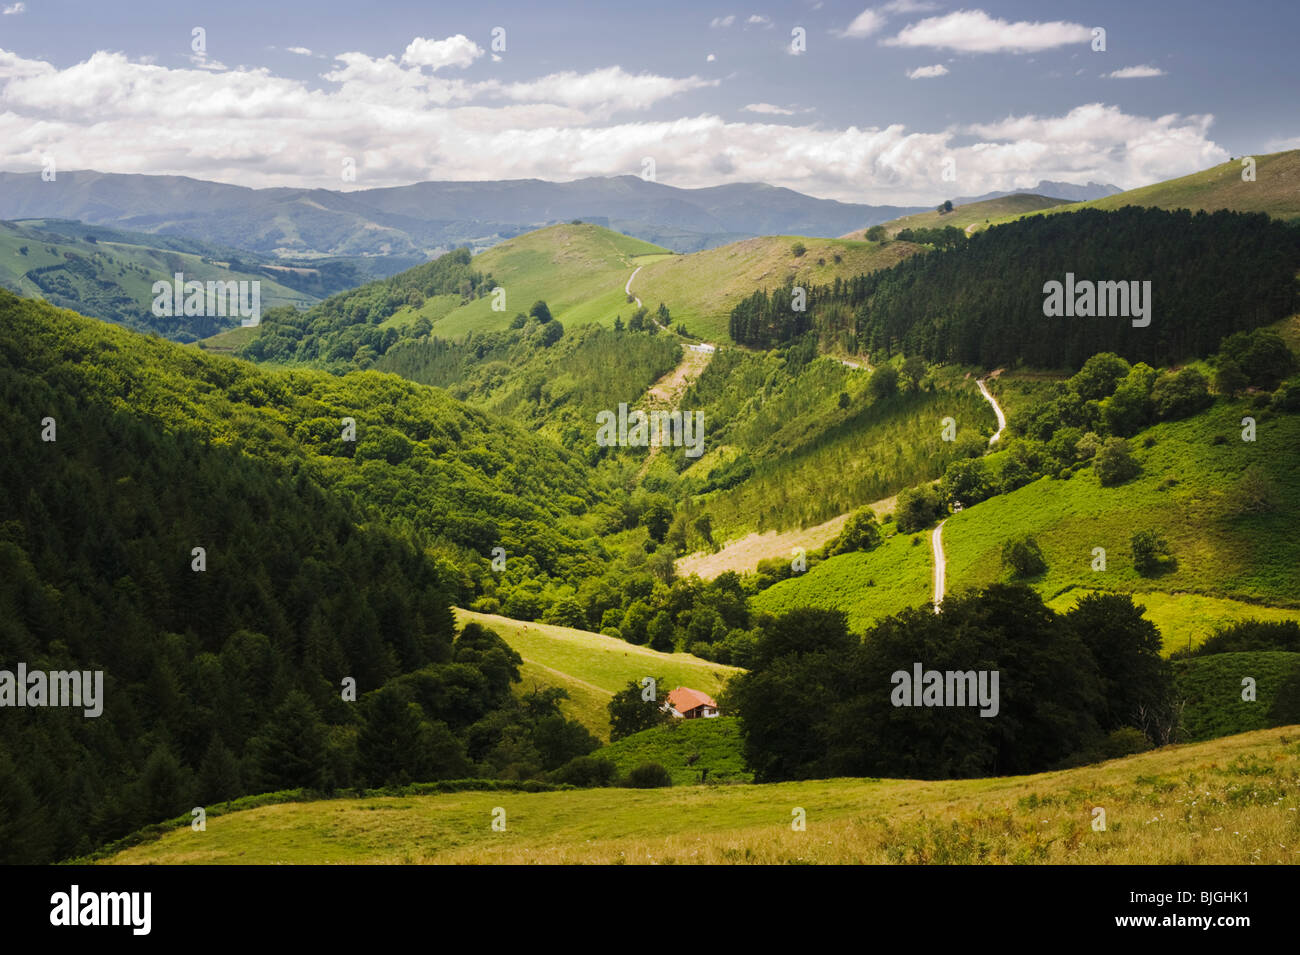 View from the road between the villages of Etxalar and Zugararrmurdi, Navarre, northern Spain Stock Photo